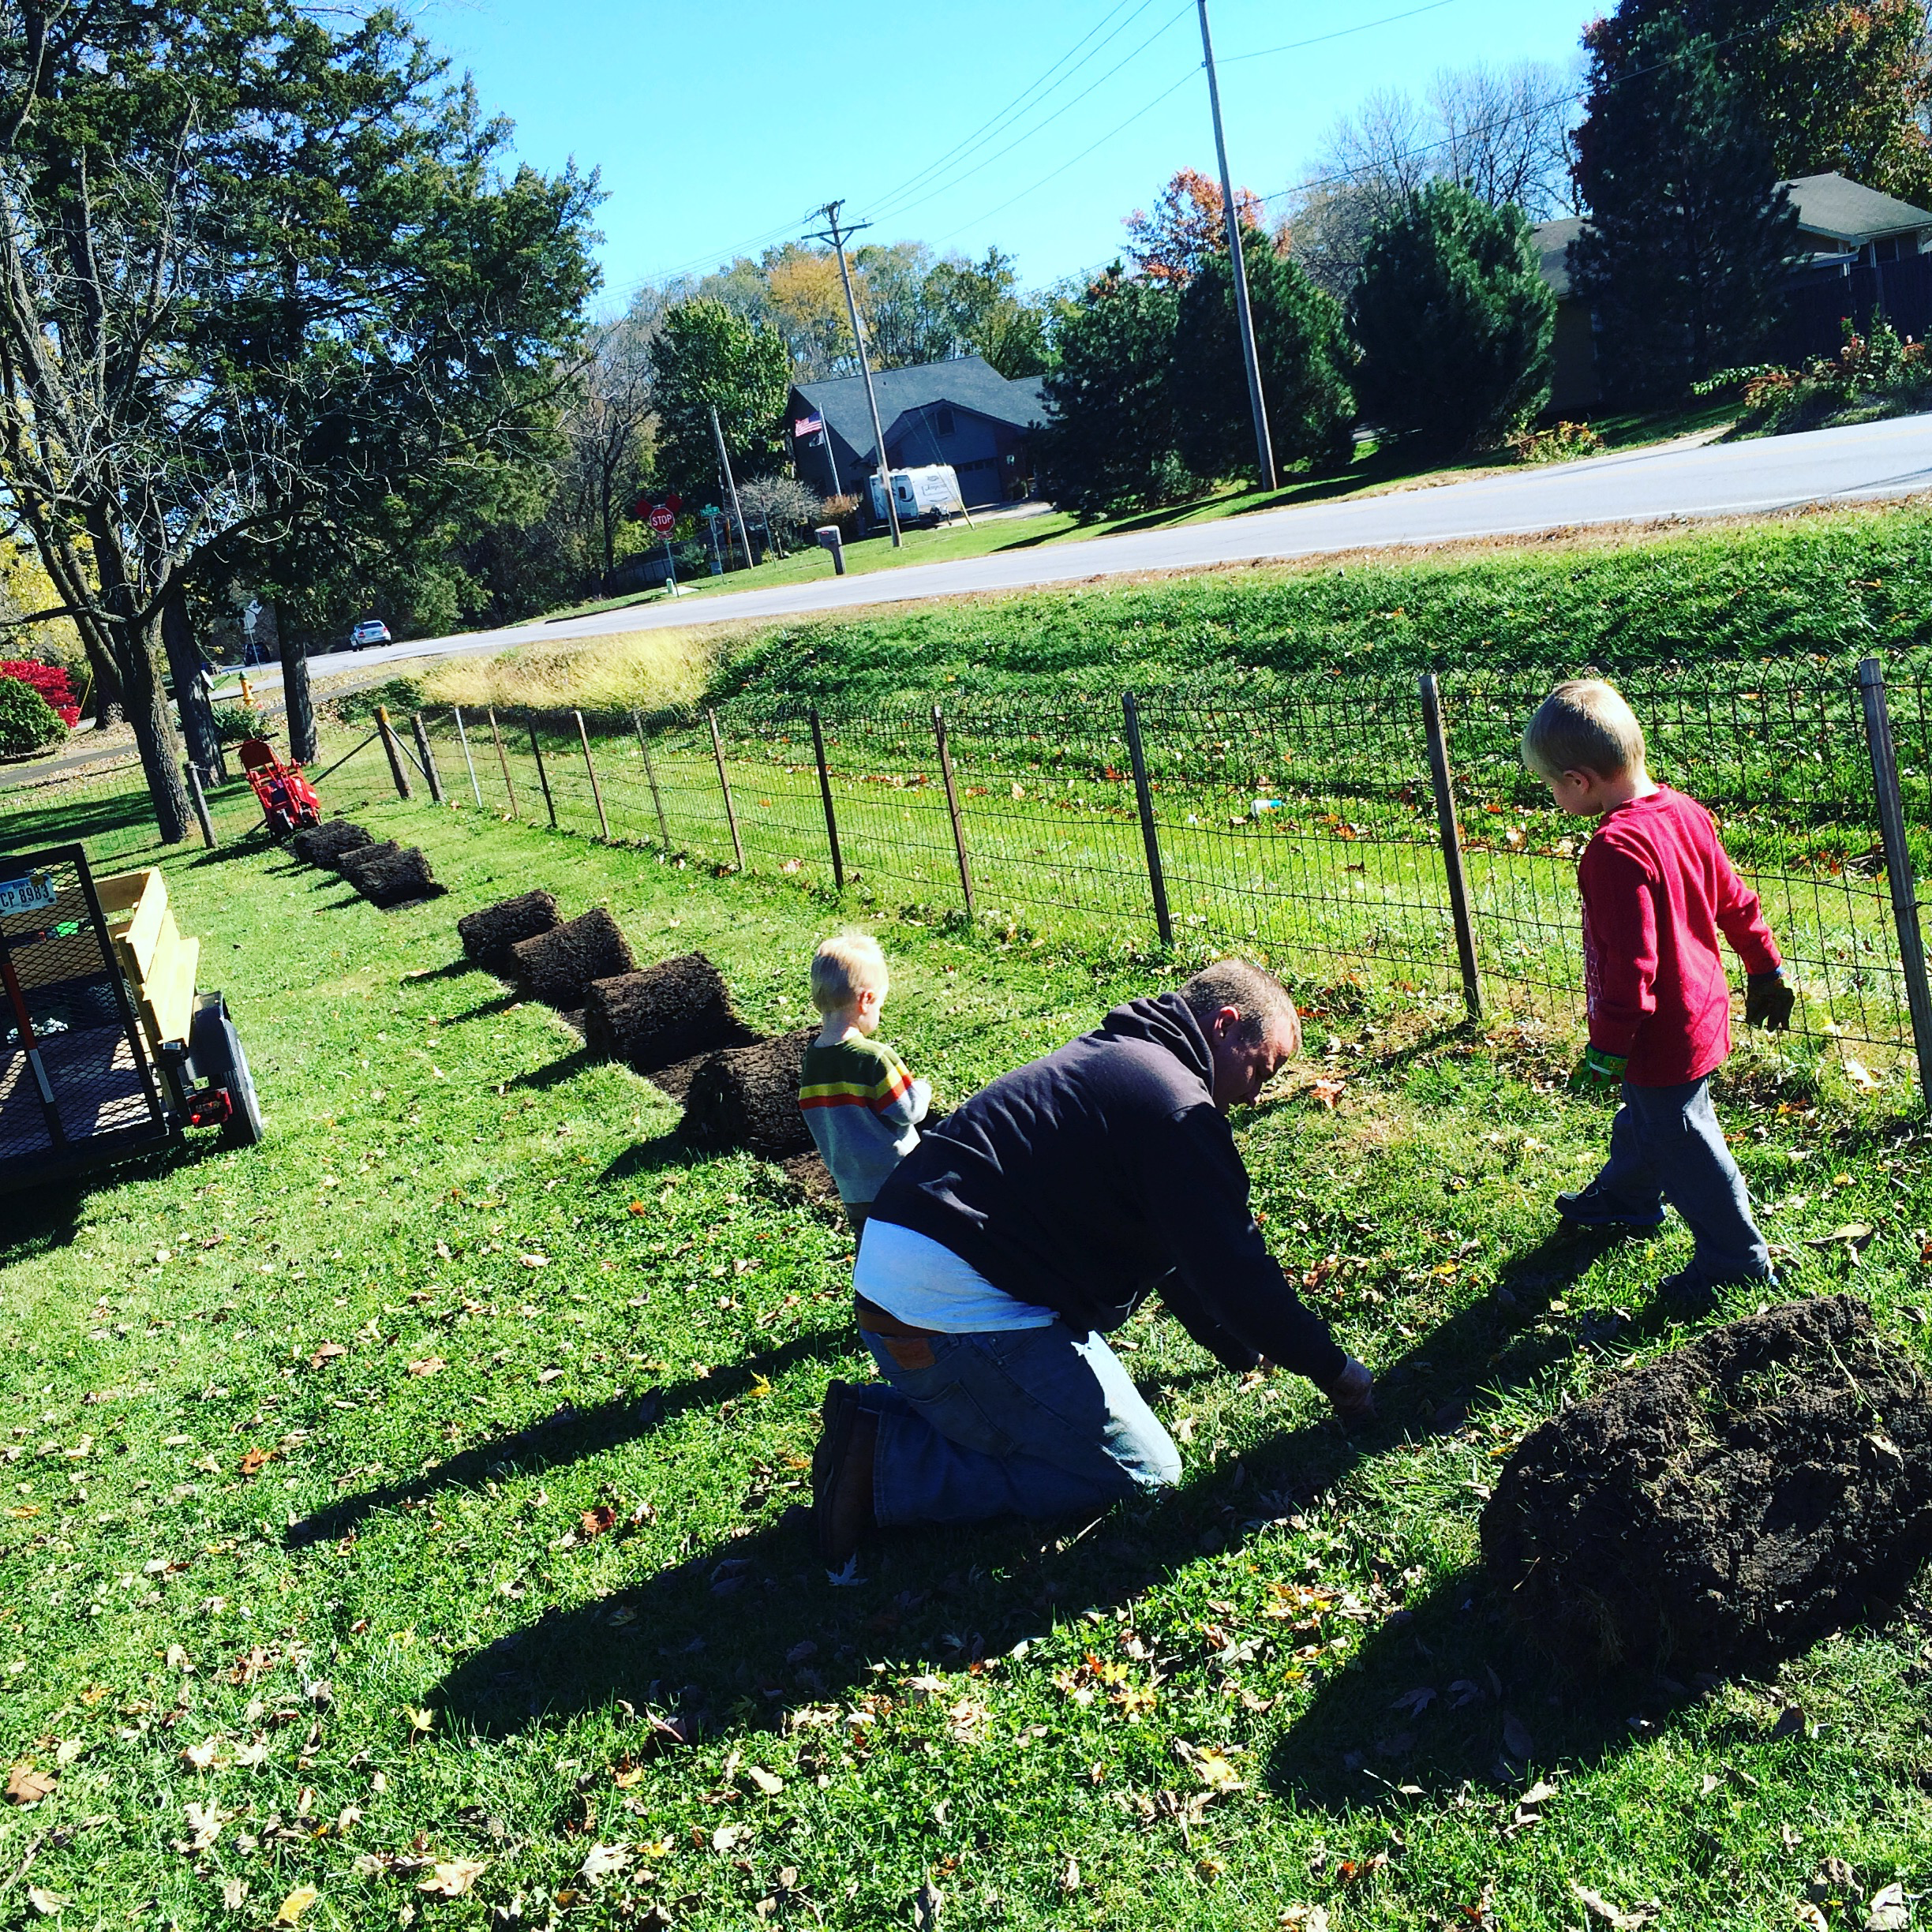 Here are the boys working with Dad to pull up the sod to make way for the new garden.